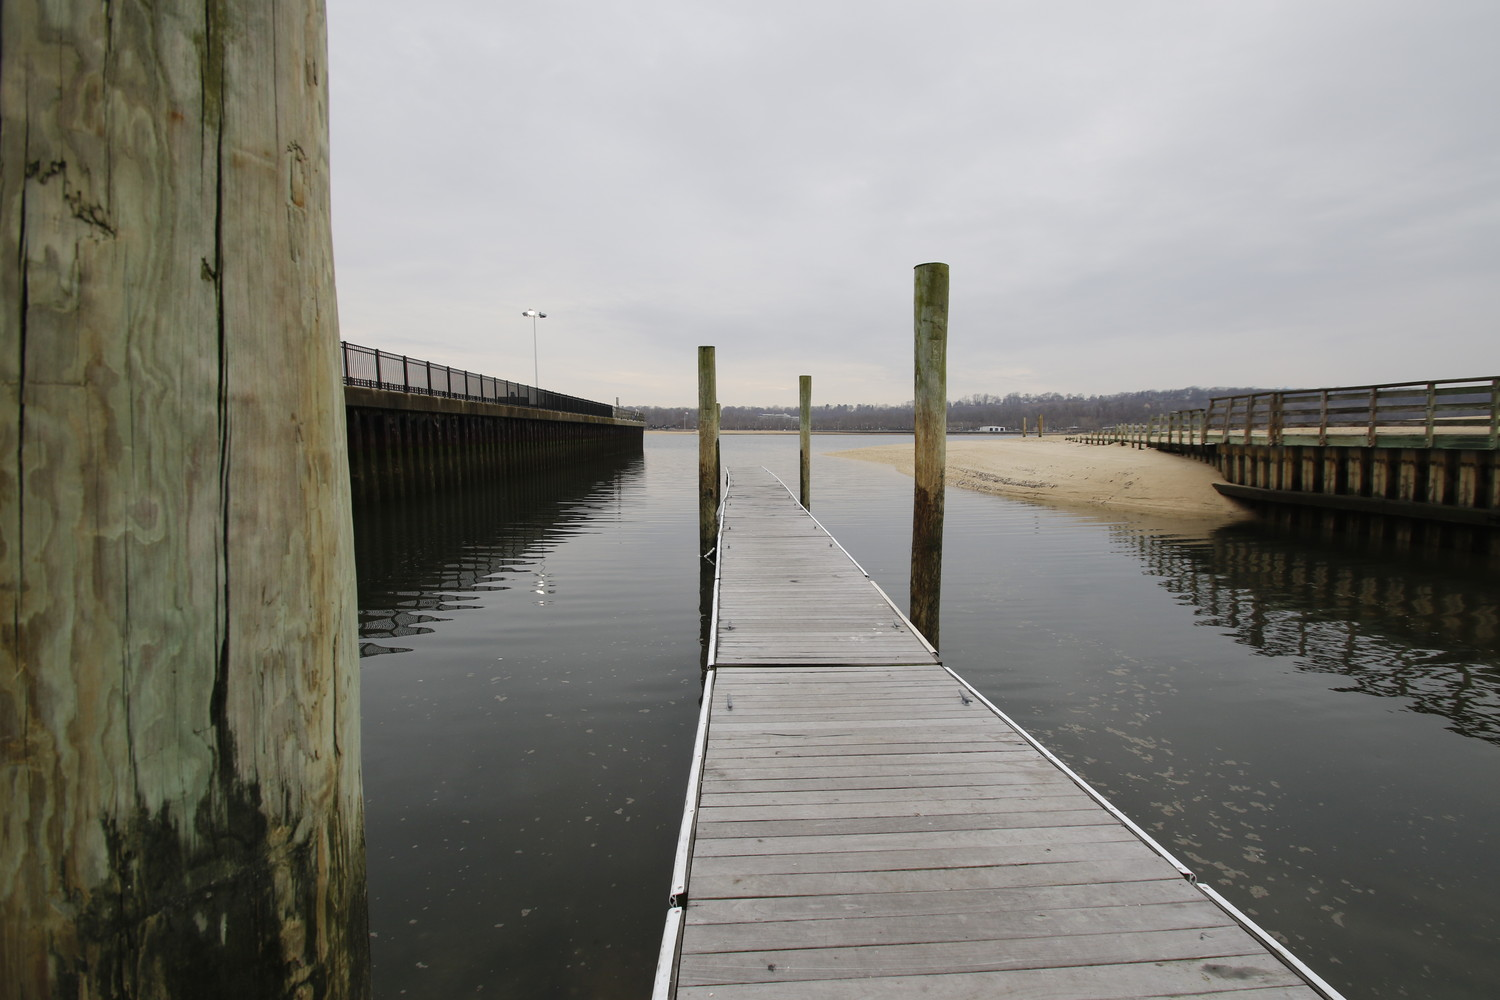 A dock wades out into Hempstead Harbor.